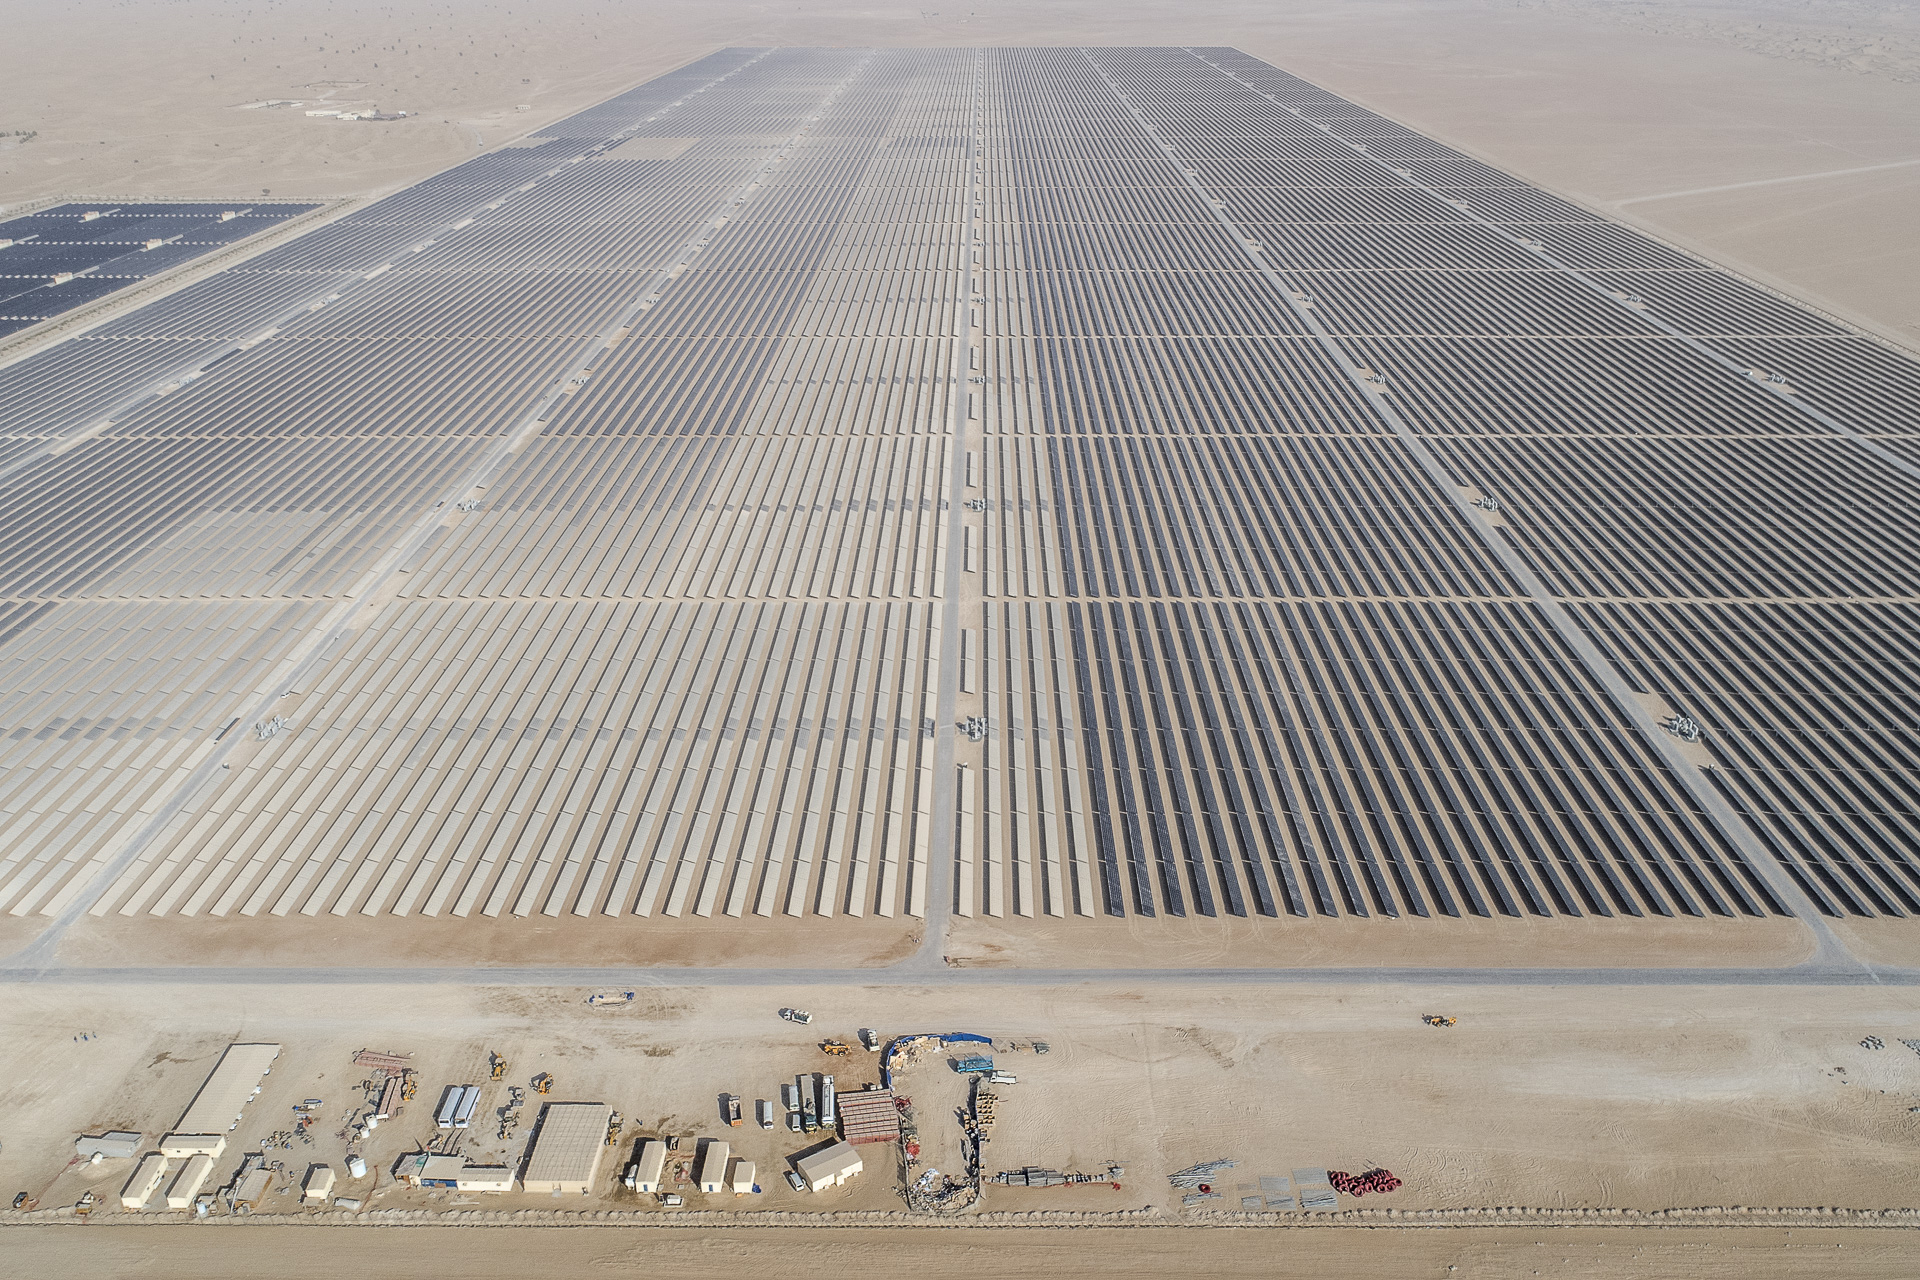 DUBAI, THE WORD'S MOST IMPROBABLE GREEN CITY, NATIONAL GEOGRAPHIC MAGAZINE / MOHAMMED BIN RASHID AL MAKTOUM SOLAR PARK